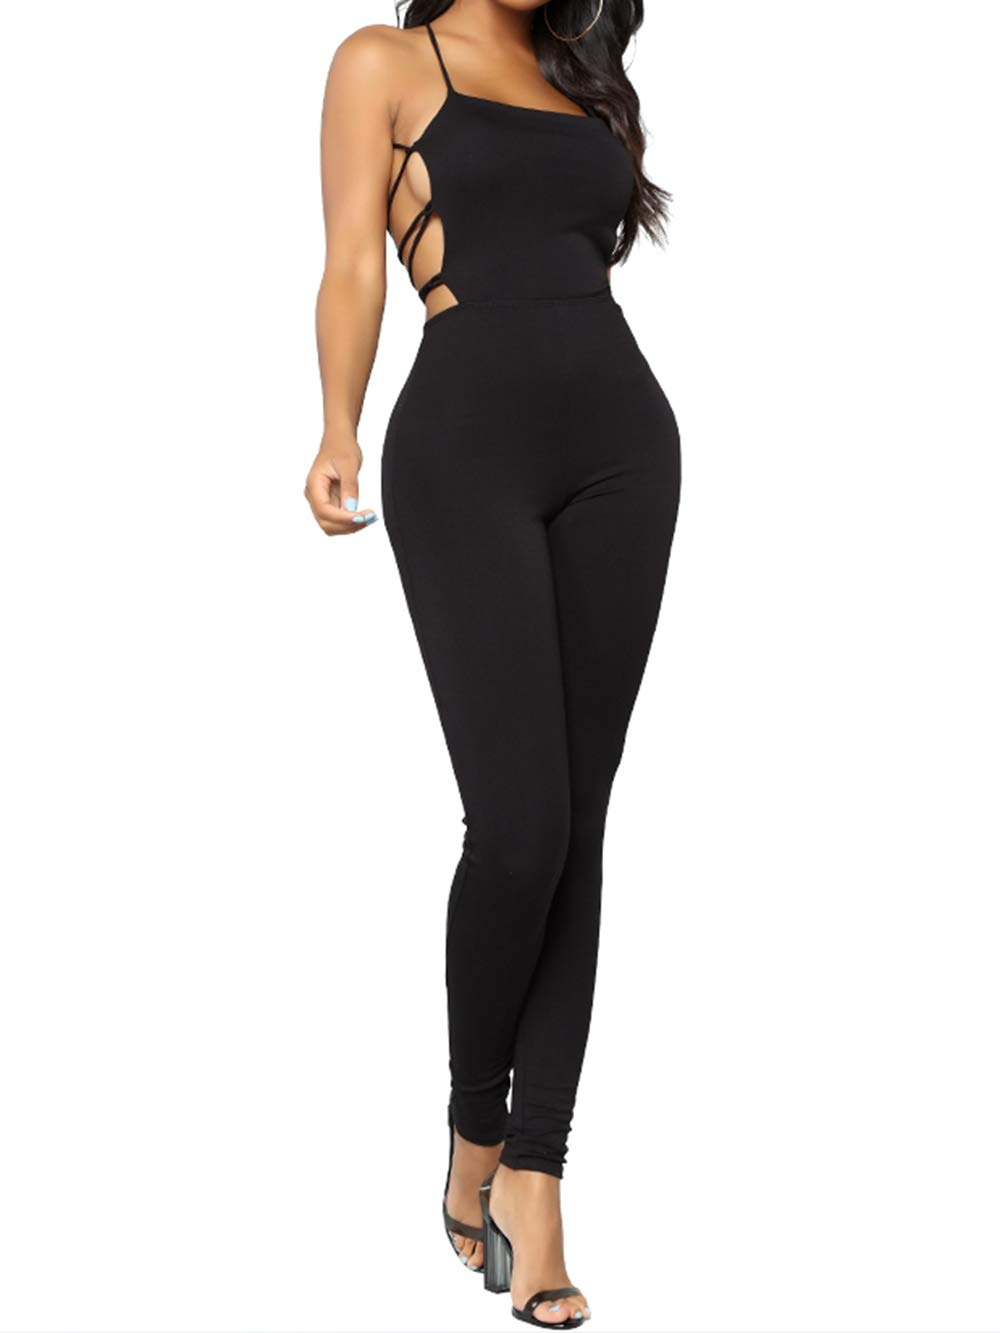 Yizenge Sexy Bodycon Jumpsuits for Women Spaghetti Strap Backless Jumpsuit Rompers (Medium,Black)